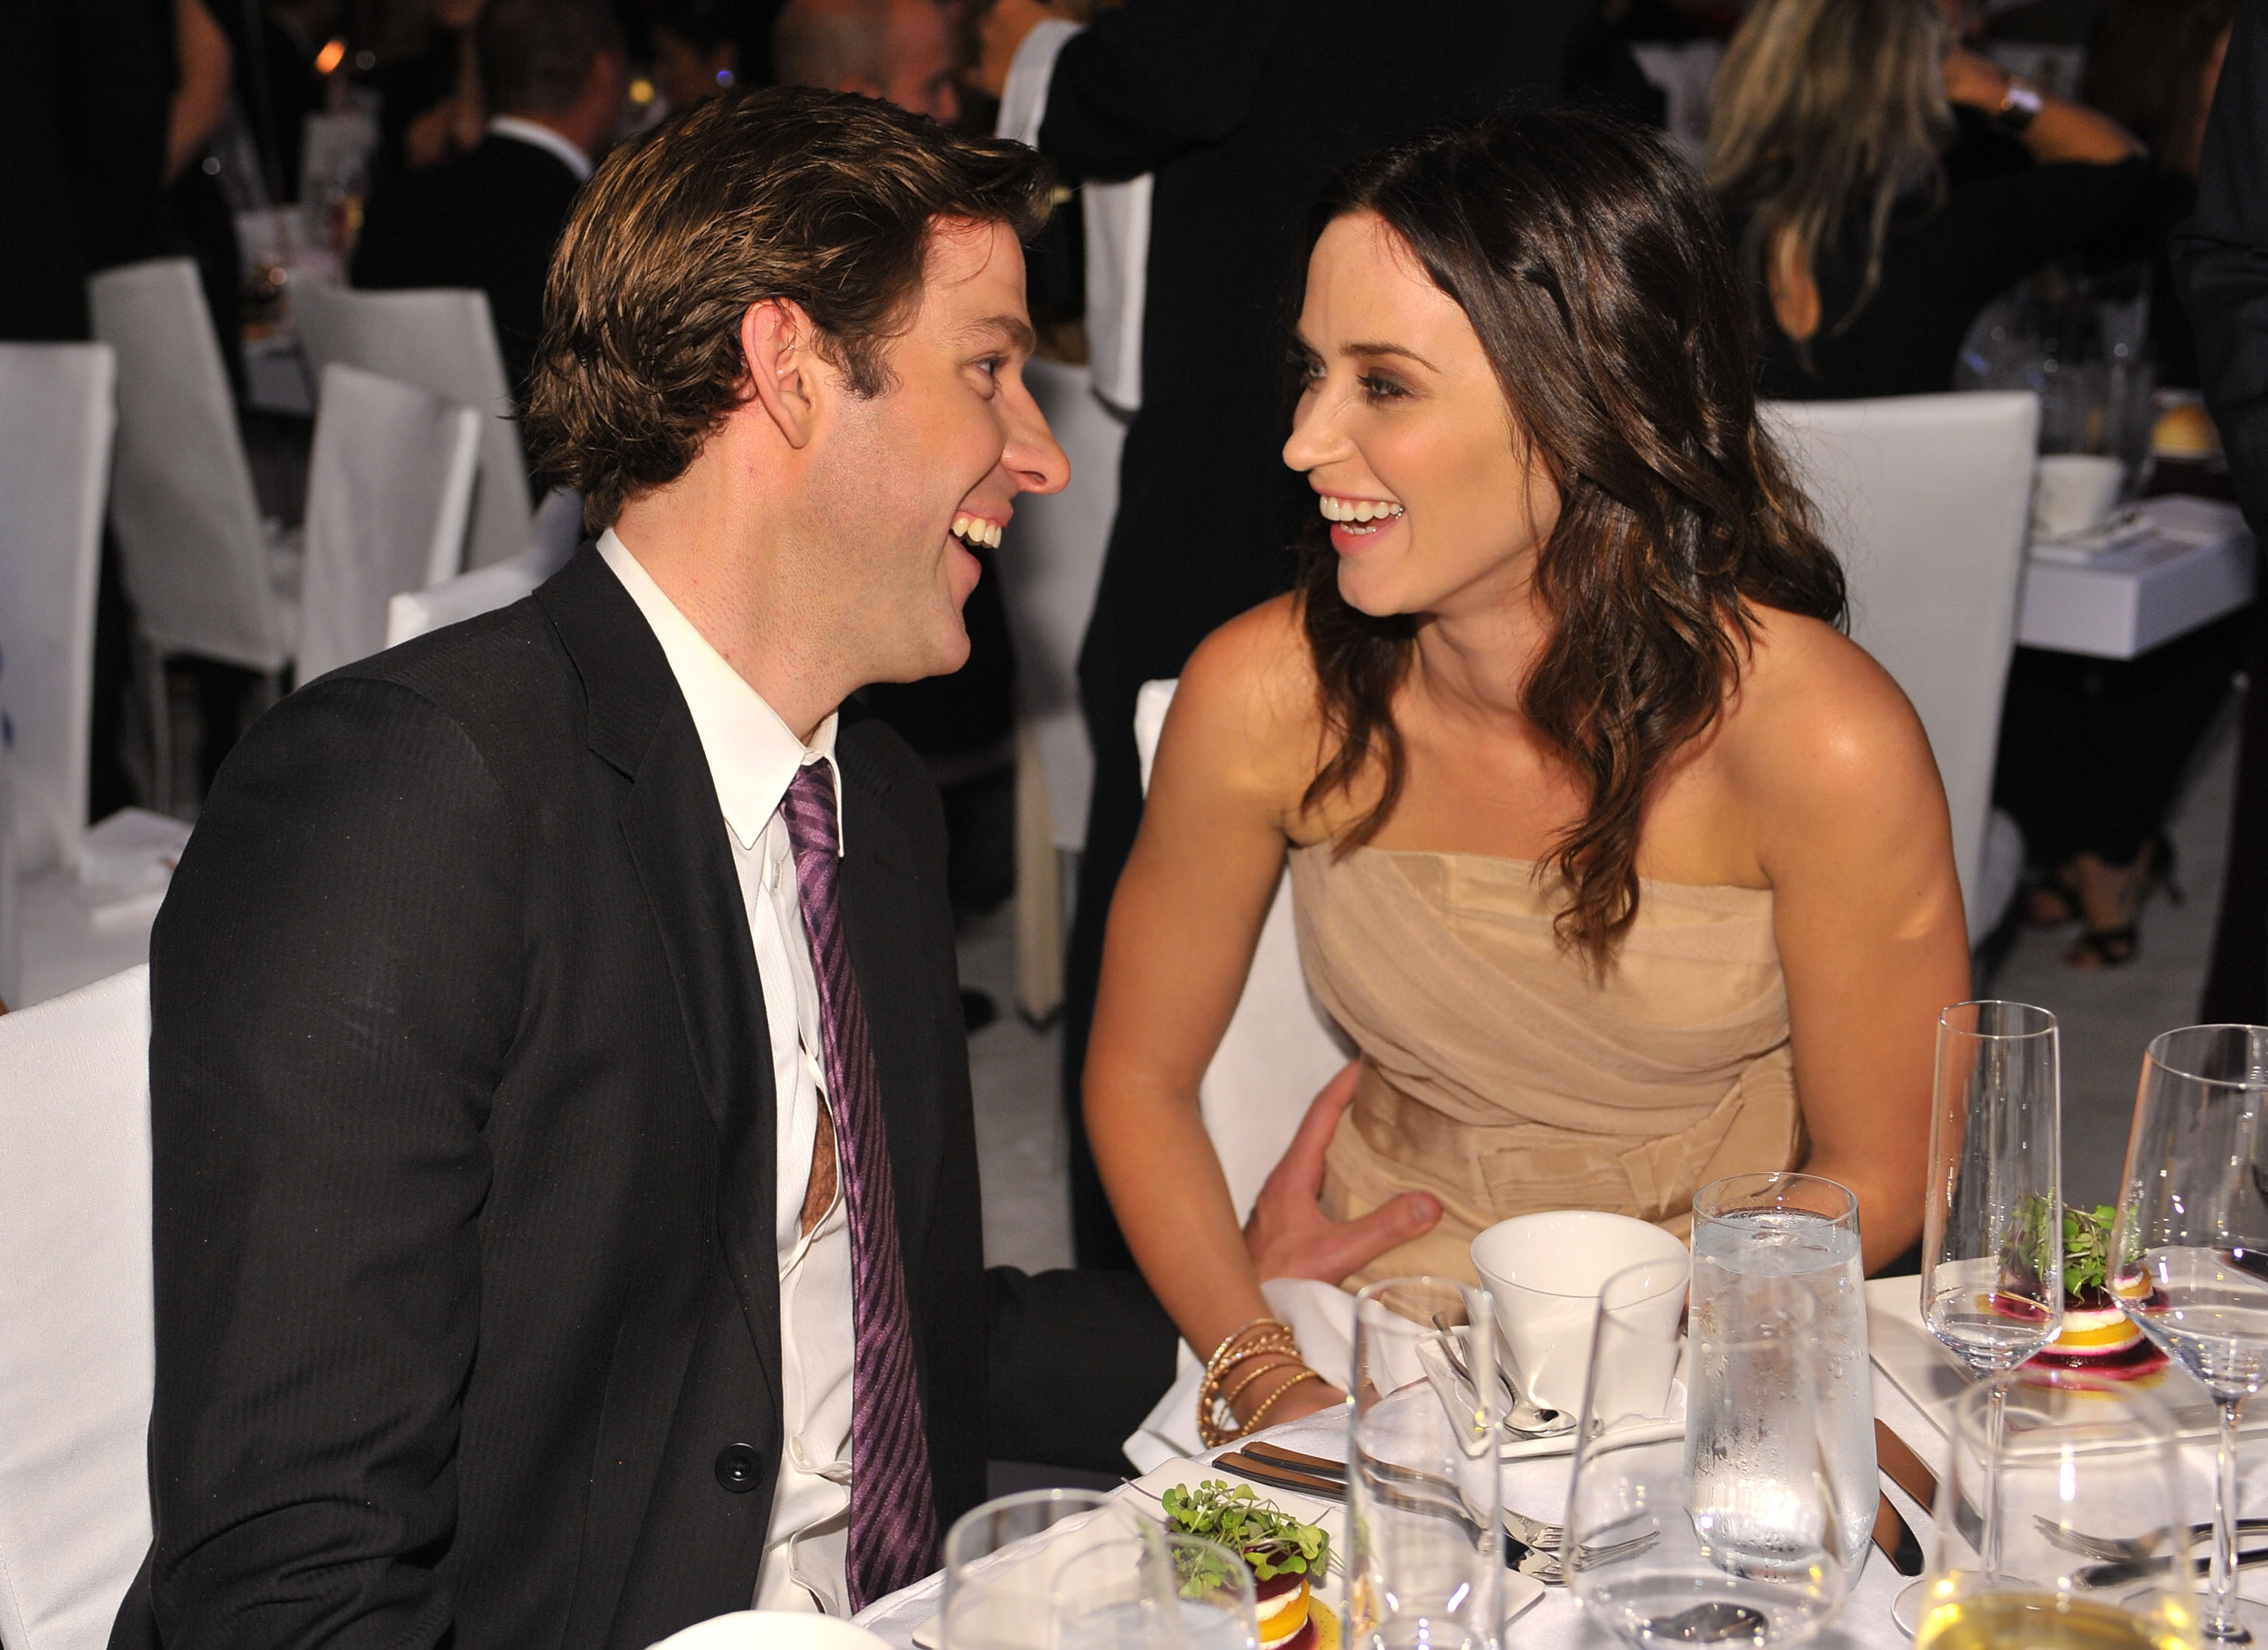 Actor John Krasinski and actress Emily Blunt attend the 16th Annual ELLE Women in Hollywood Tribute at the Four Seasons Hotel on October 19, 2009 in Beverly Hills, California.